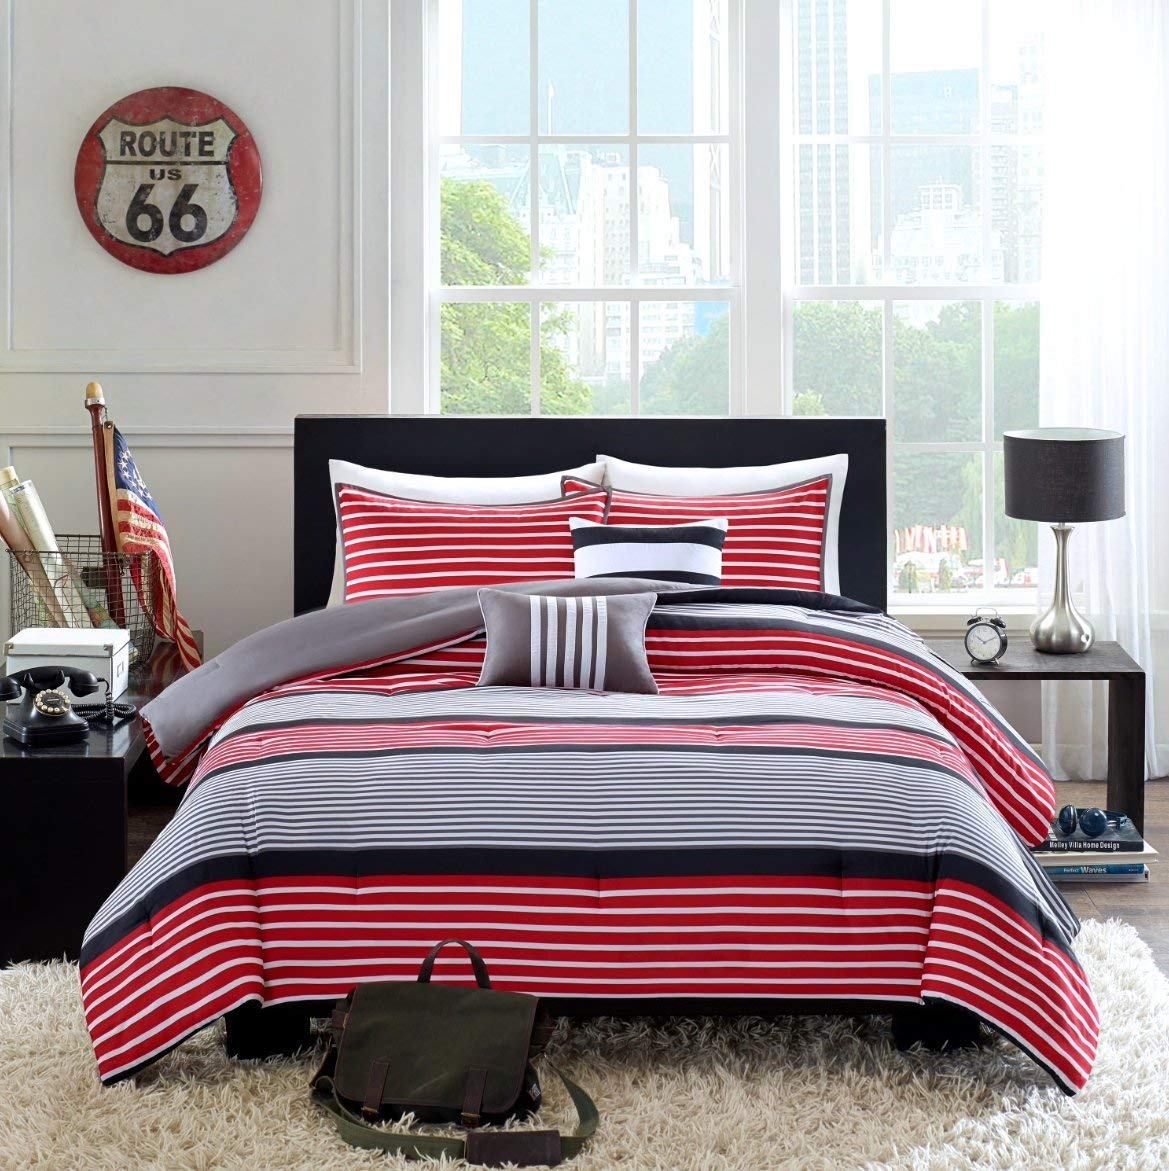 Home Style Teen Boys Bedding Rugby Stripe Red Black Gray Twin/Twin XL Comforter + Sham +2 Decorative Pillows Sleep Mask Boy Kids Comforters Sets (Twin/Twin XL Red Black)